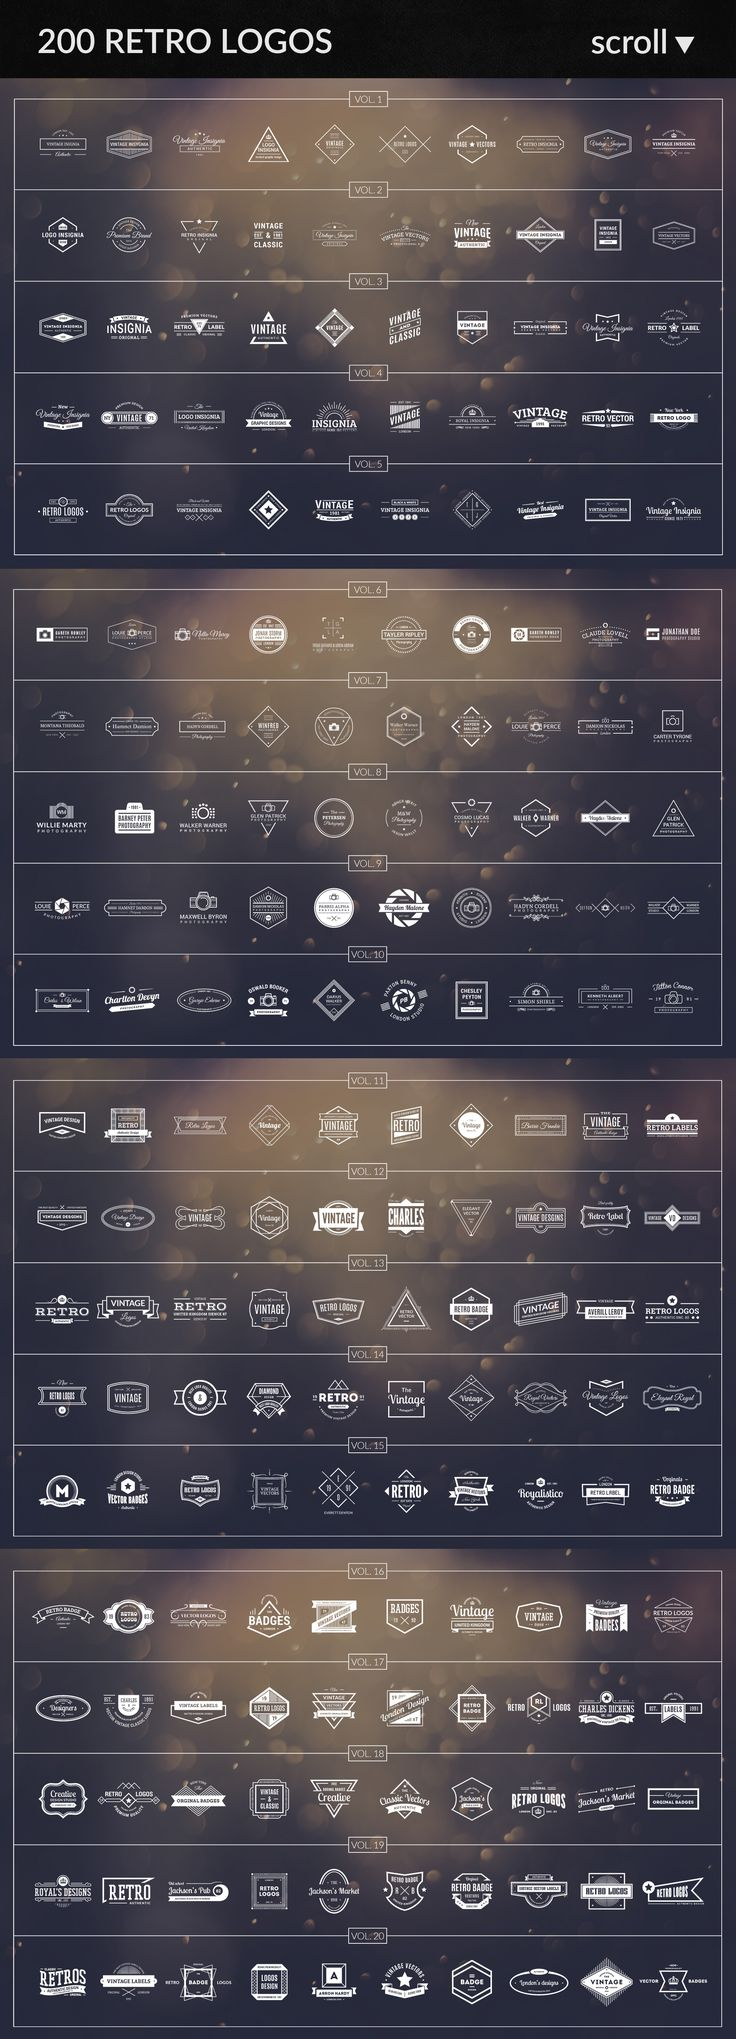 All My logos, badges, insignias, stickers in one bundle. SAVE 761 $ - Great occasion ! Features 200 Photography logos + 200 Retro Universal Logos + 200 Retro Badges + 200 Minimalistic Logos